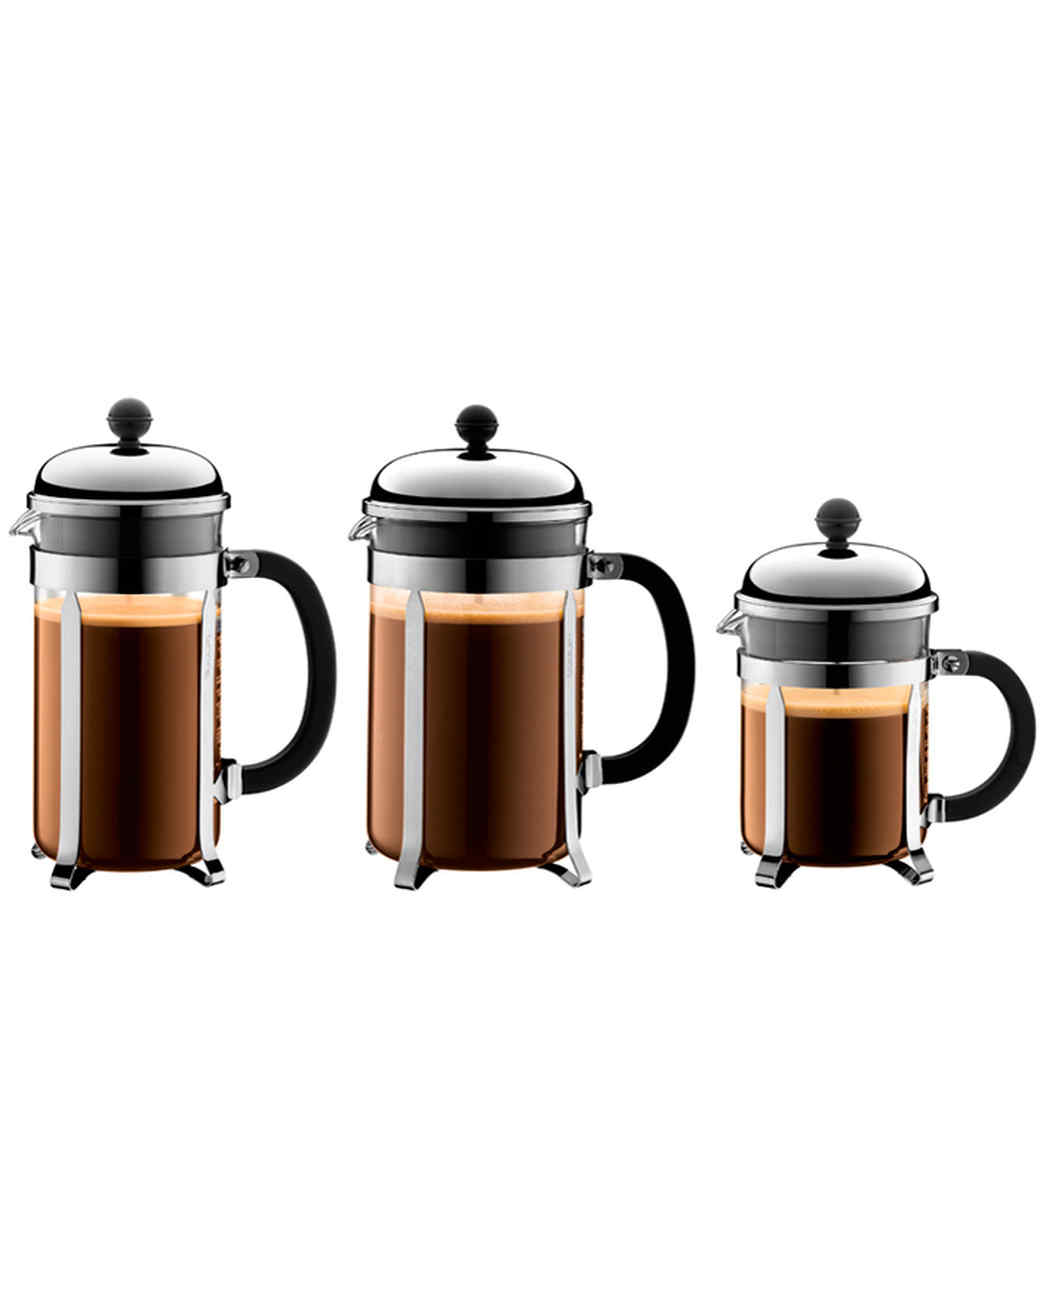 opensky-bodum-french-presses.jpg